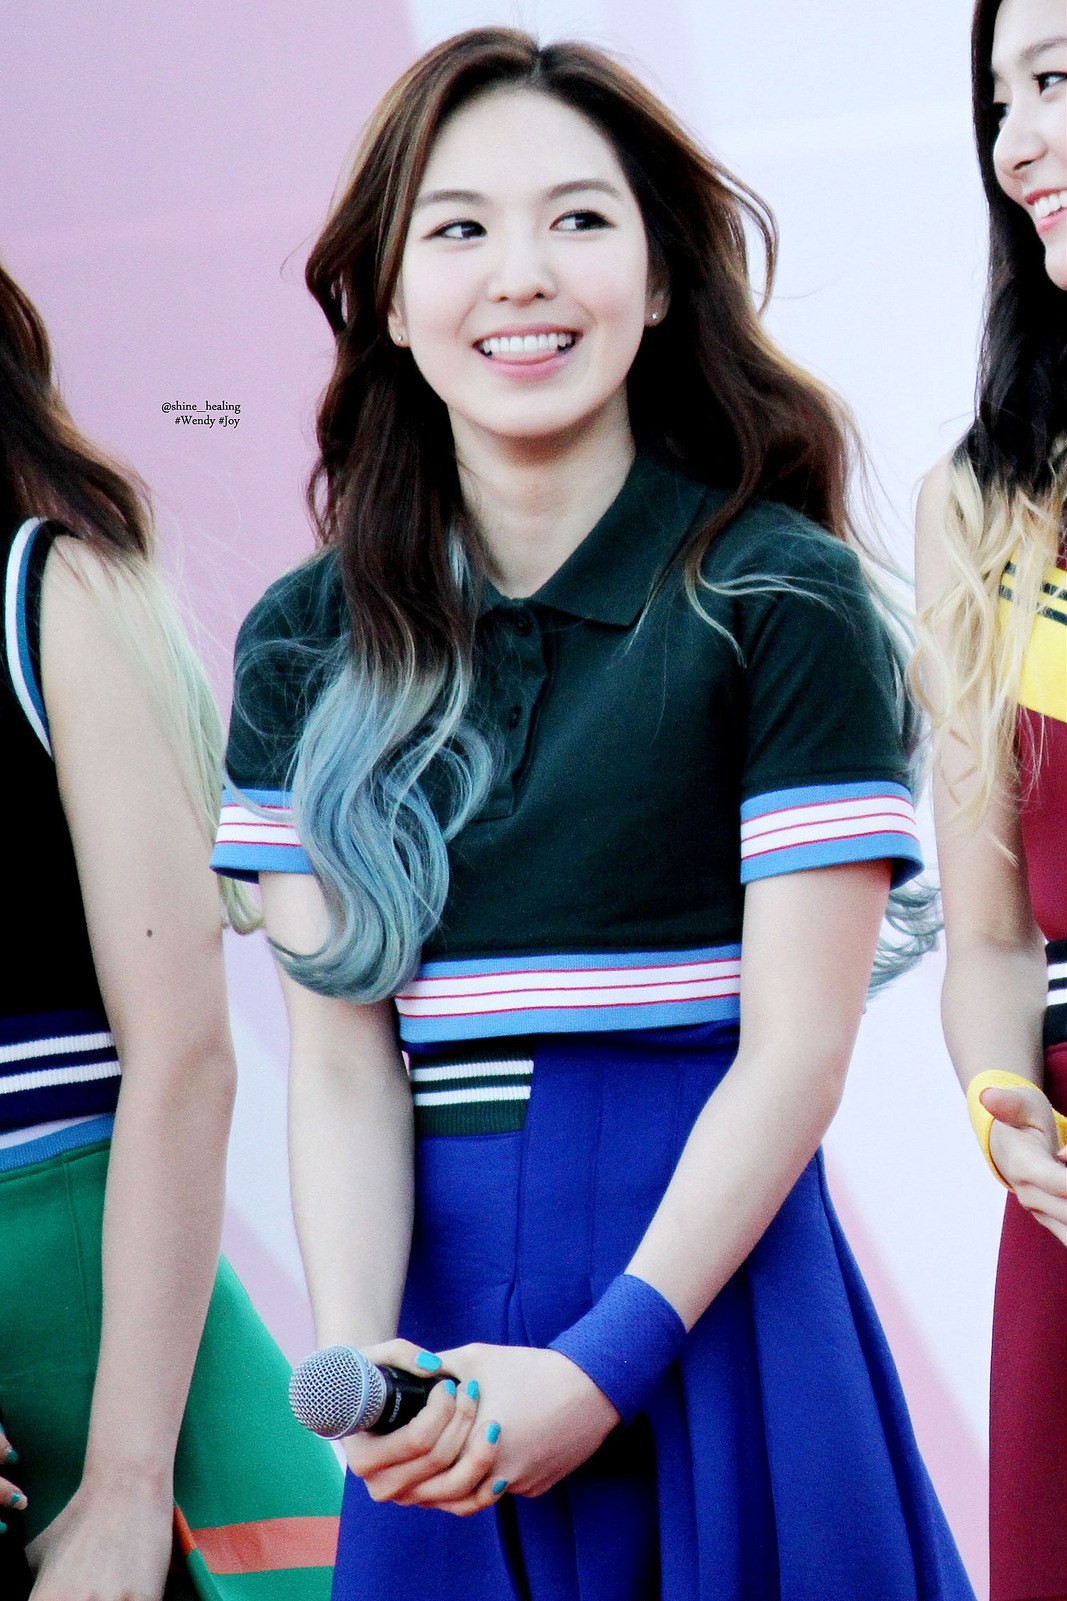 wendy-blue-hair